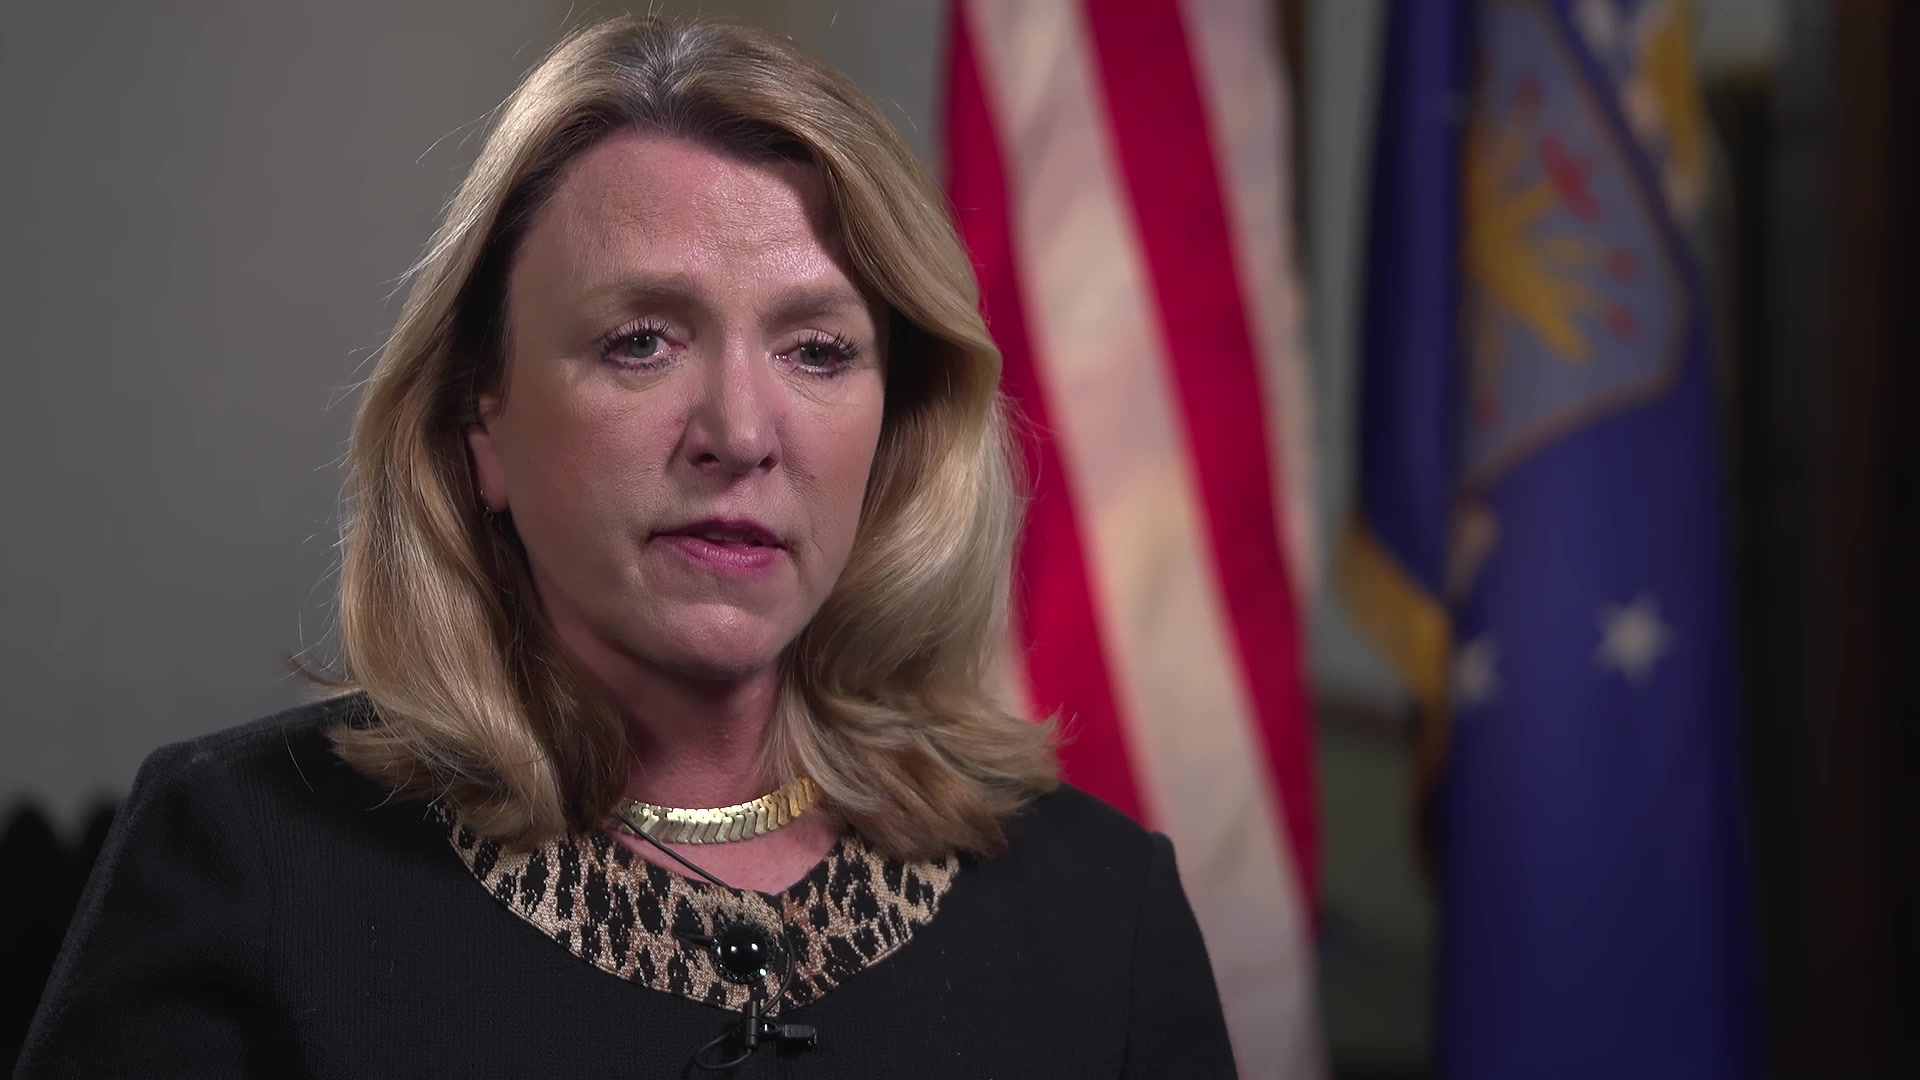 Deborah Lee James, the 23rd Secretary of the Air Force, shares her perspectives on the importance of mentorship, Wright-Patterson Air Force Base, Nov. 20, 2019. Air Force Materiel Command shares the impact of mentoring through first-person experiences from Air Force leaders. (U.S. Air Force Video by 88th Air Base Wing Public Affairs)